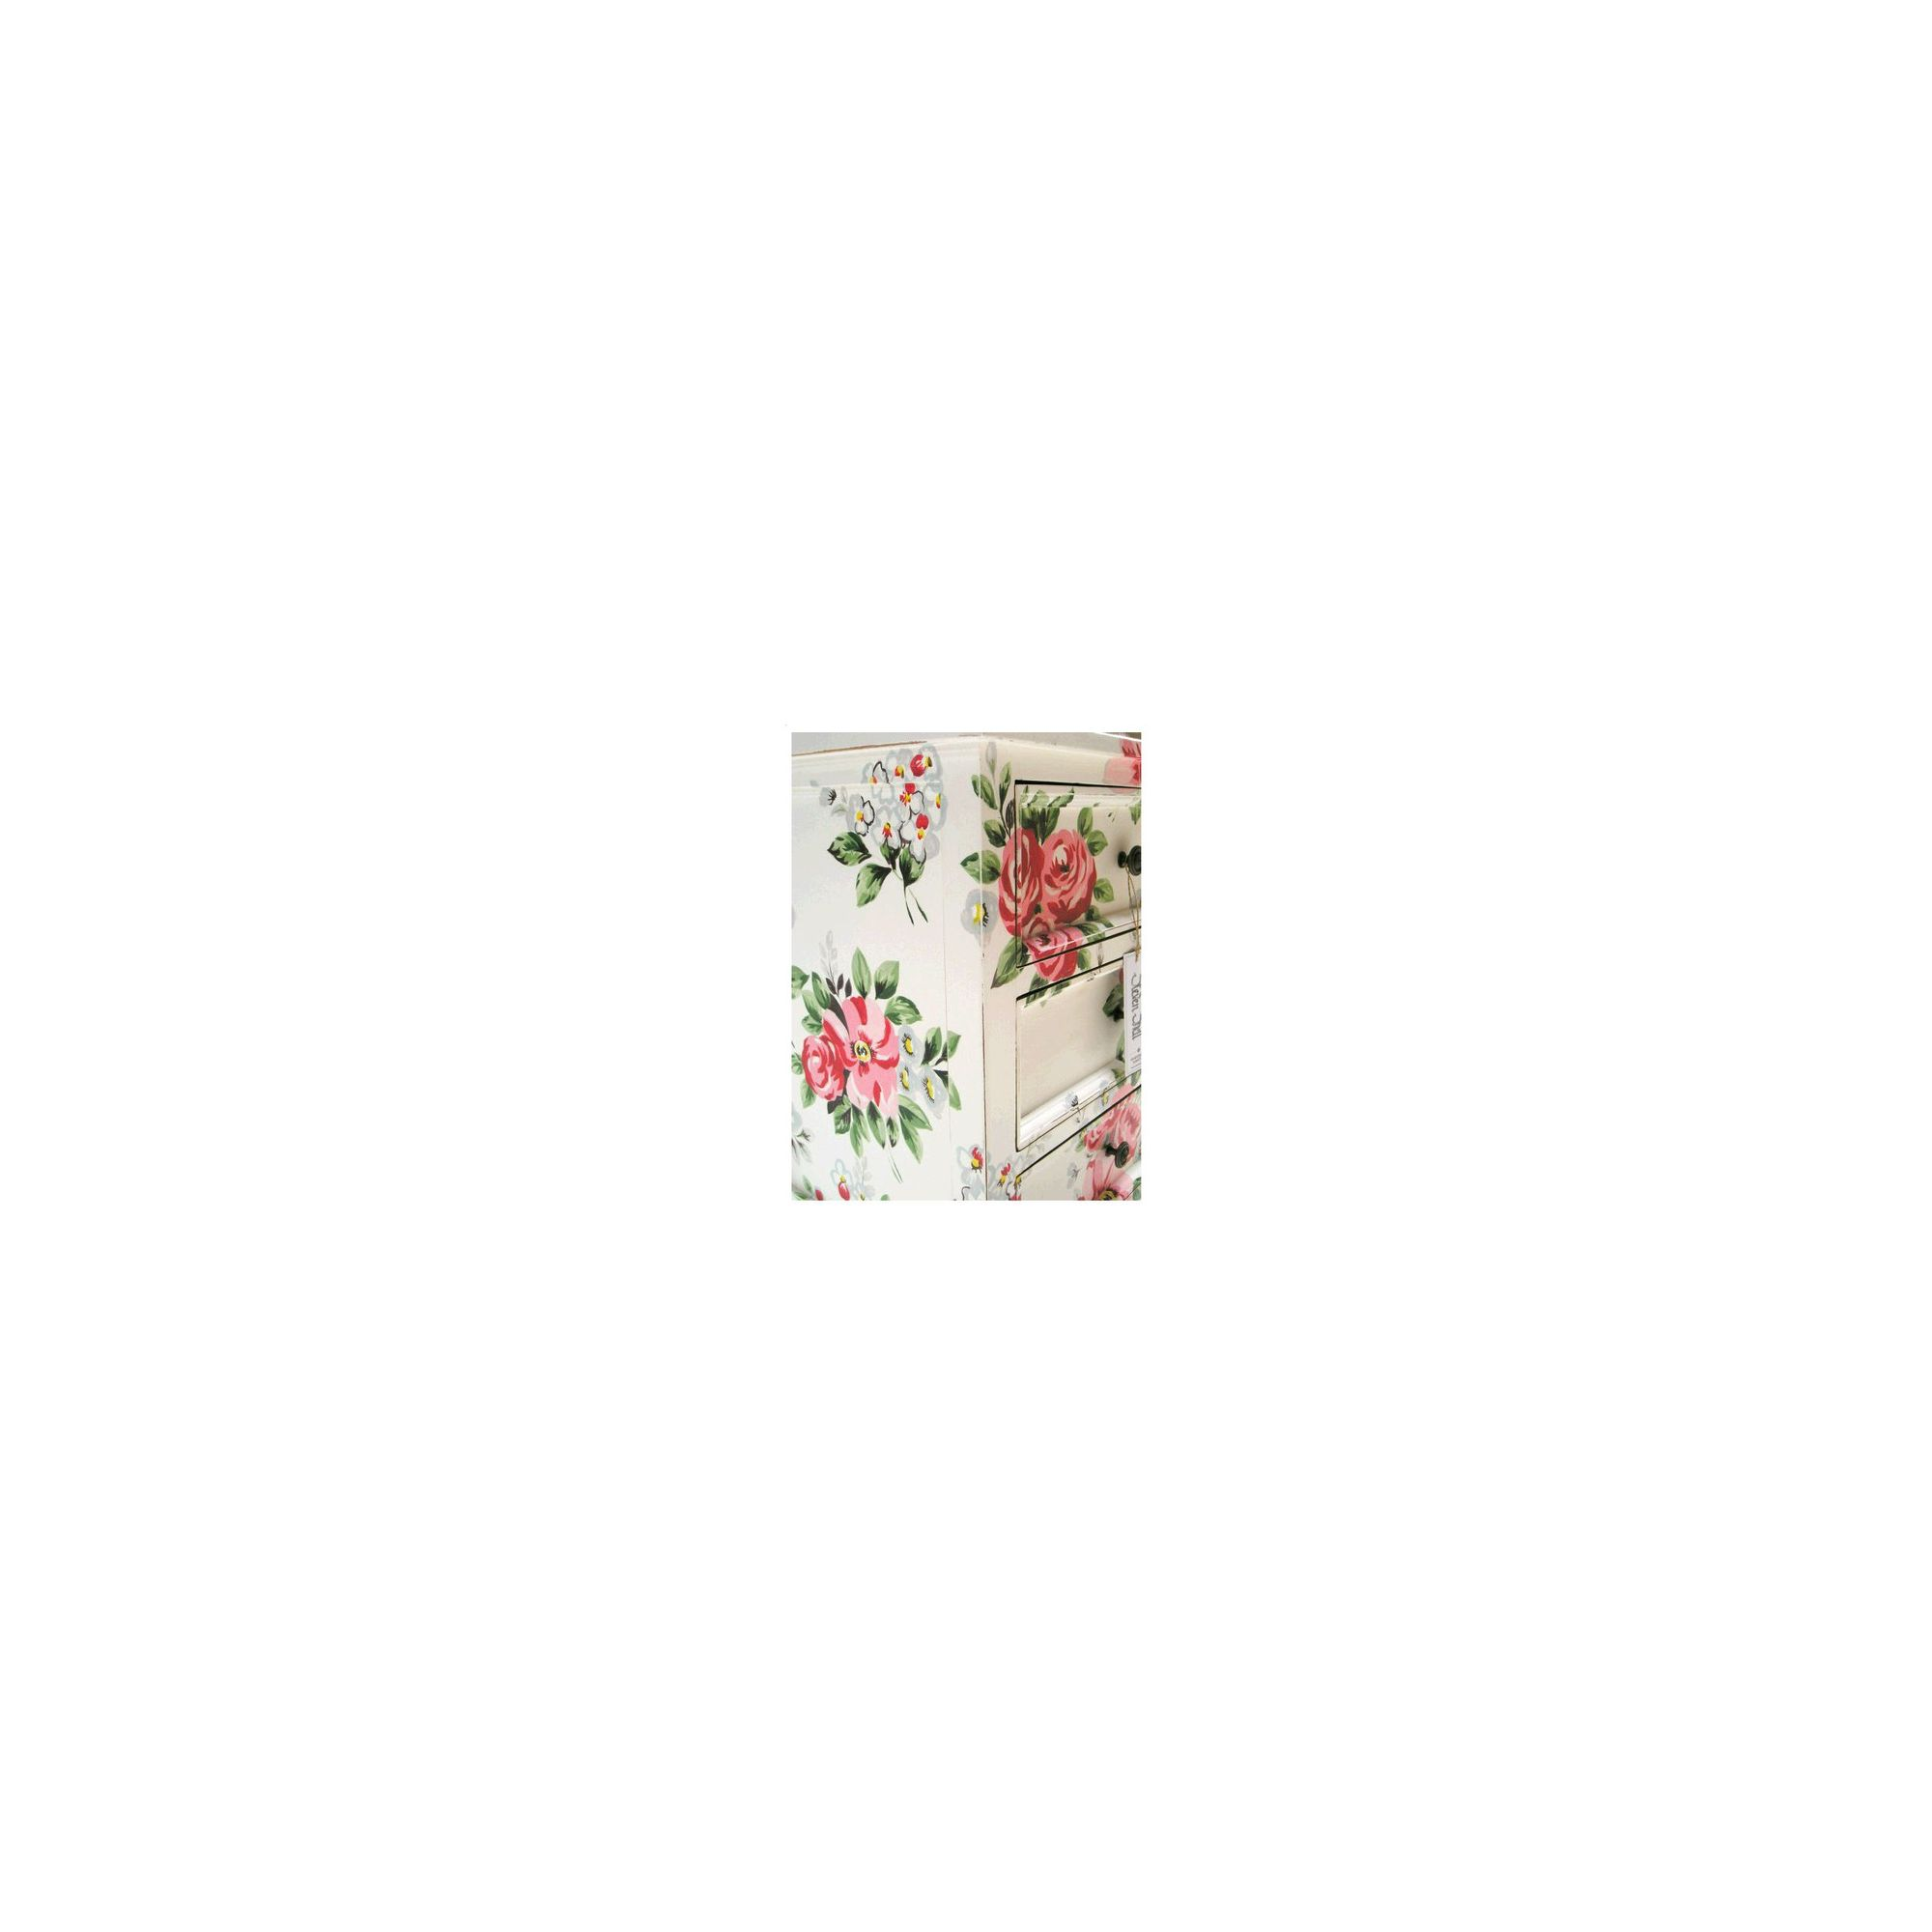 Lock stock and barrel Shell Eton 3 Drawer Side Table - Summer Breeze White at Tesco Direct